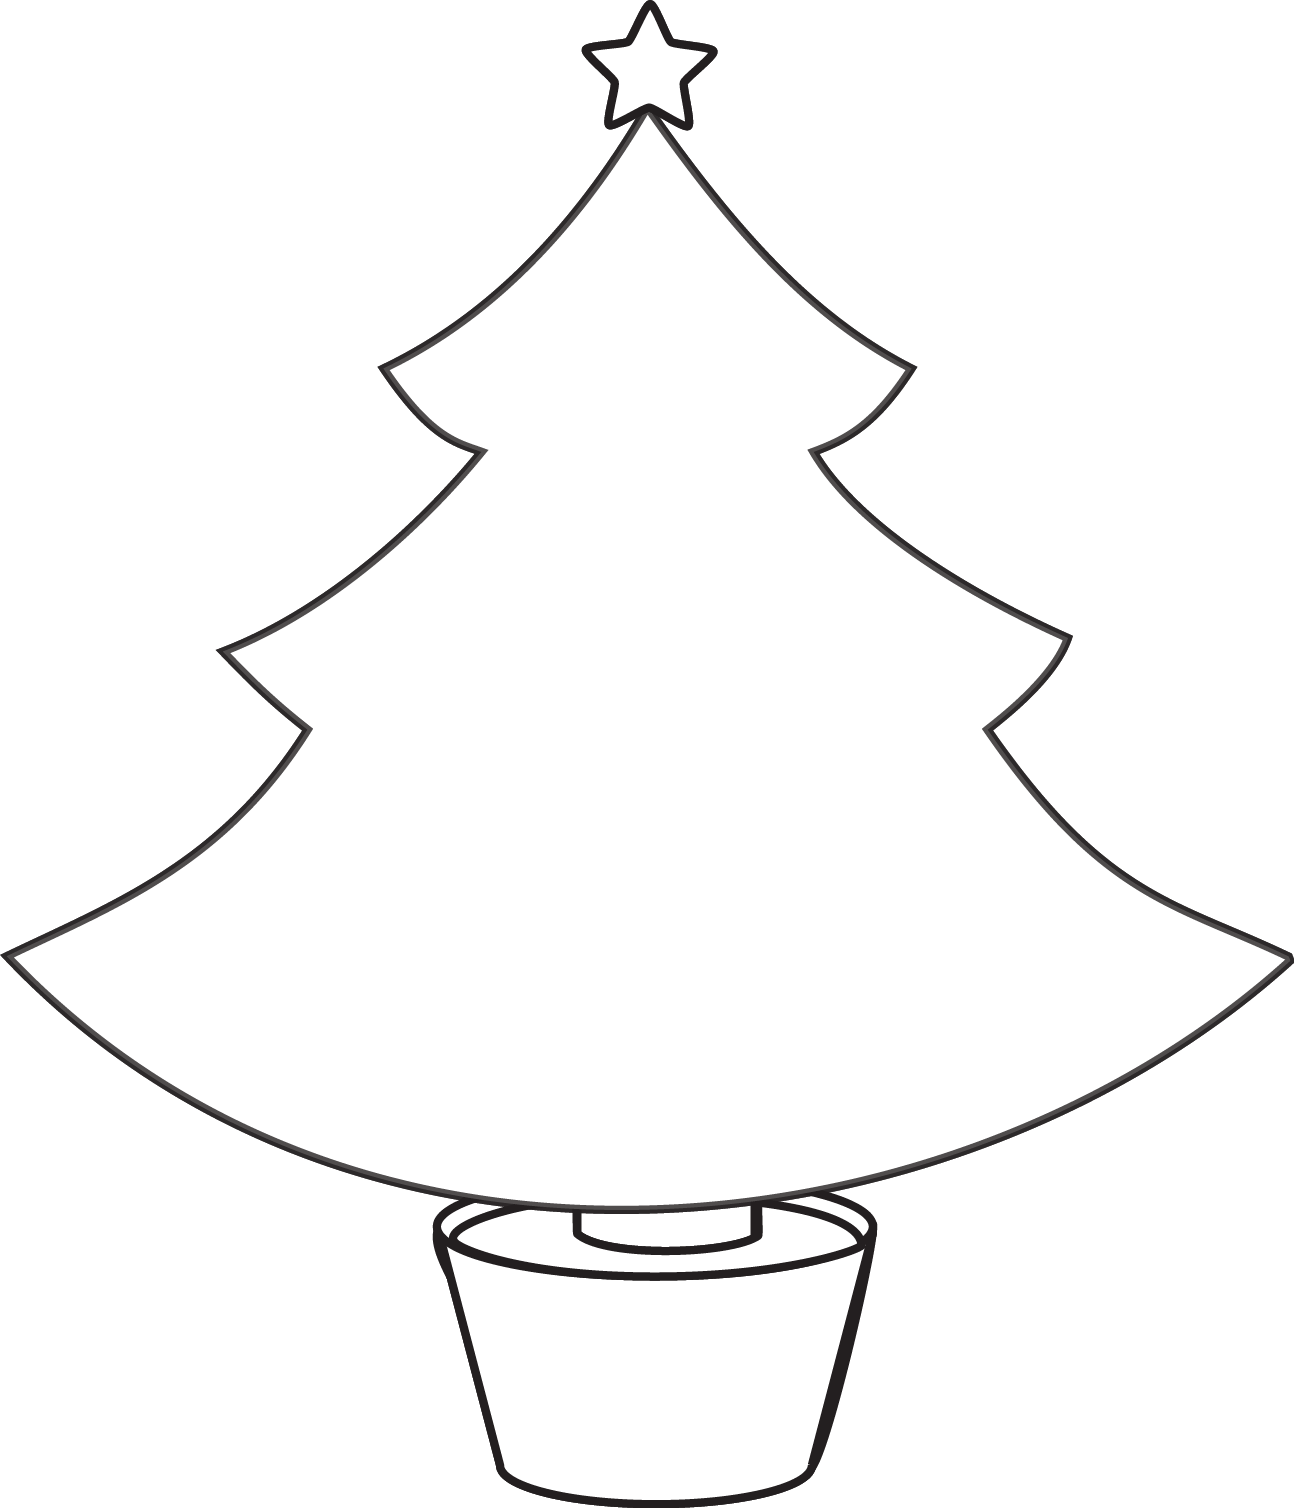 Christmas Ornament Drawing at GetDrawings.com | Free for personal ...